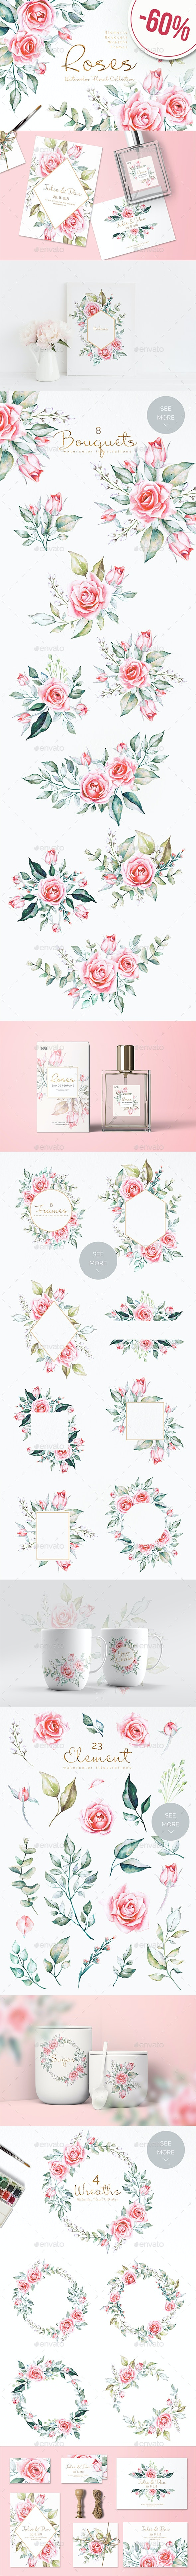 Roses Floral Collection - Flourishes / Swirls Decorative